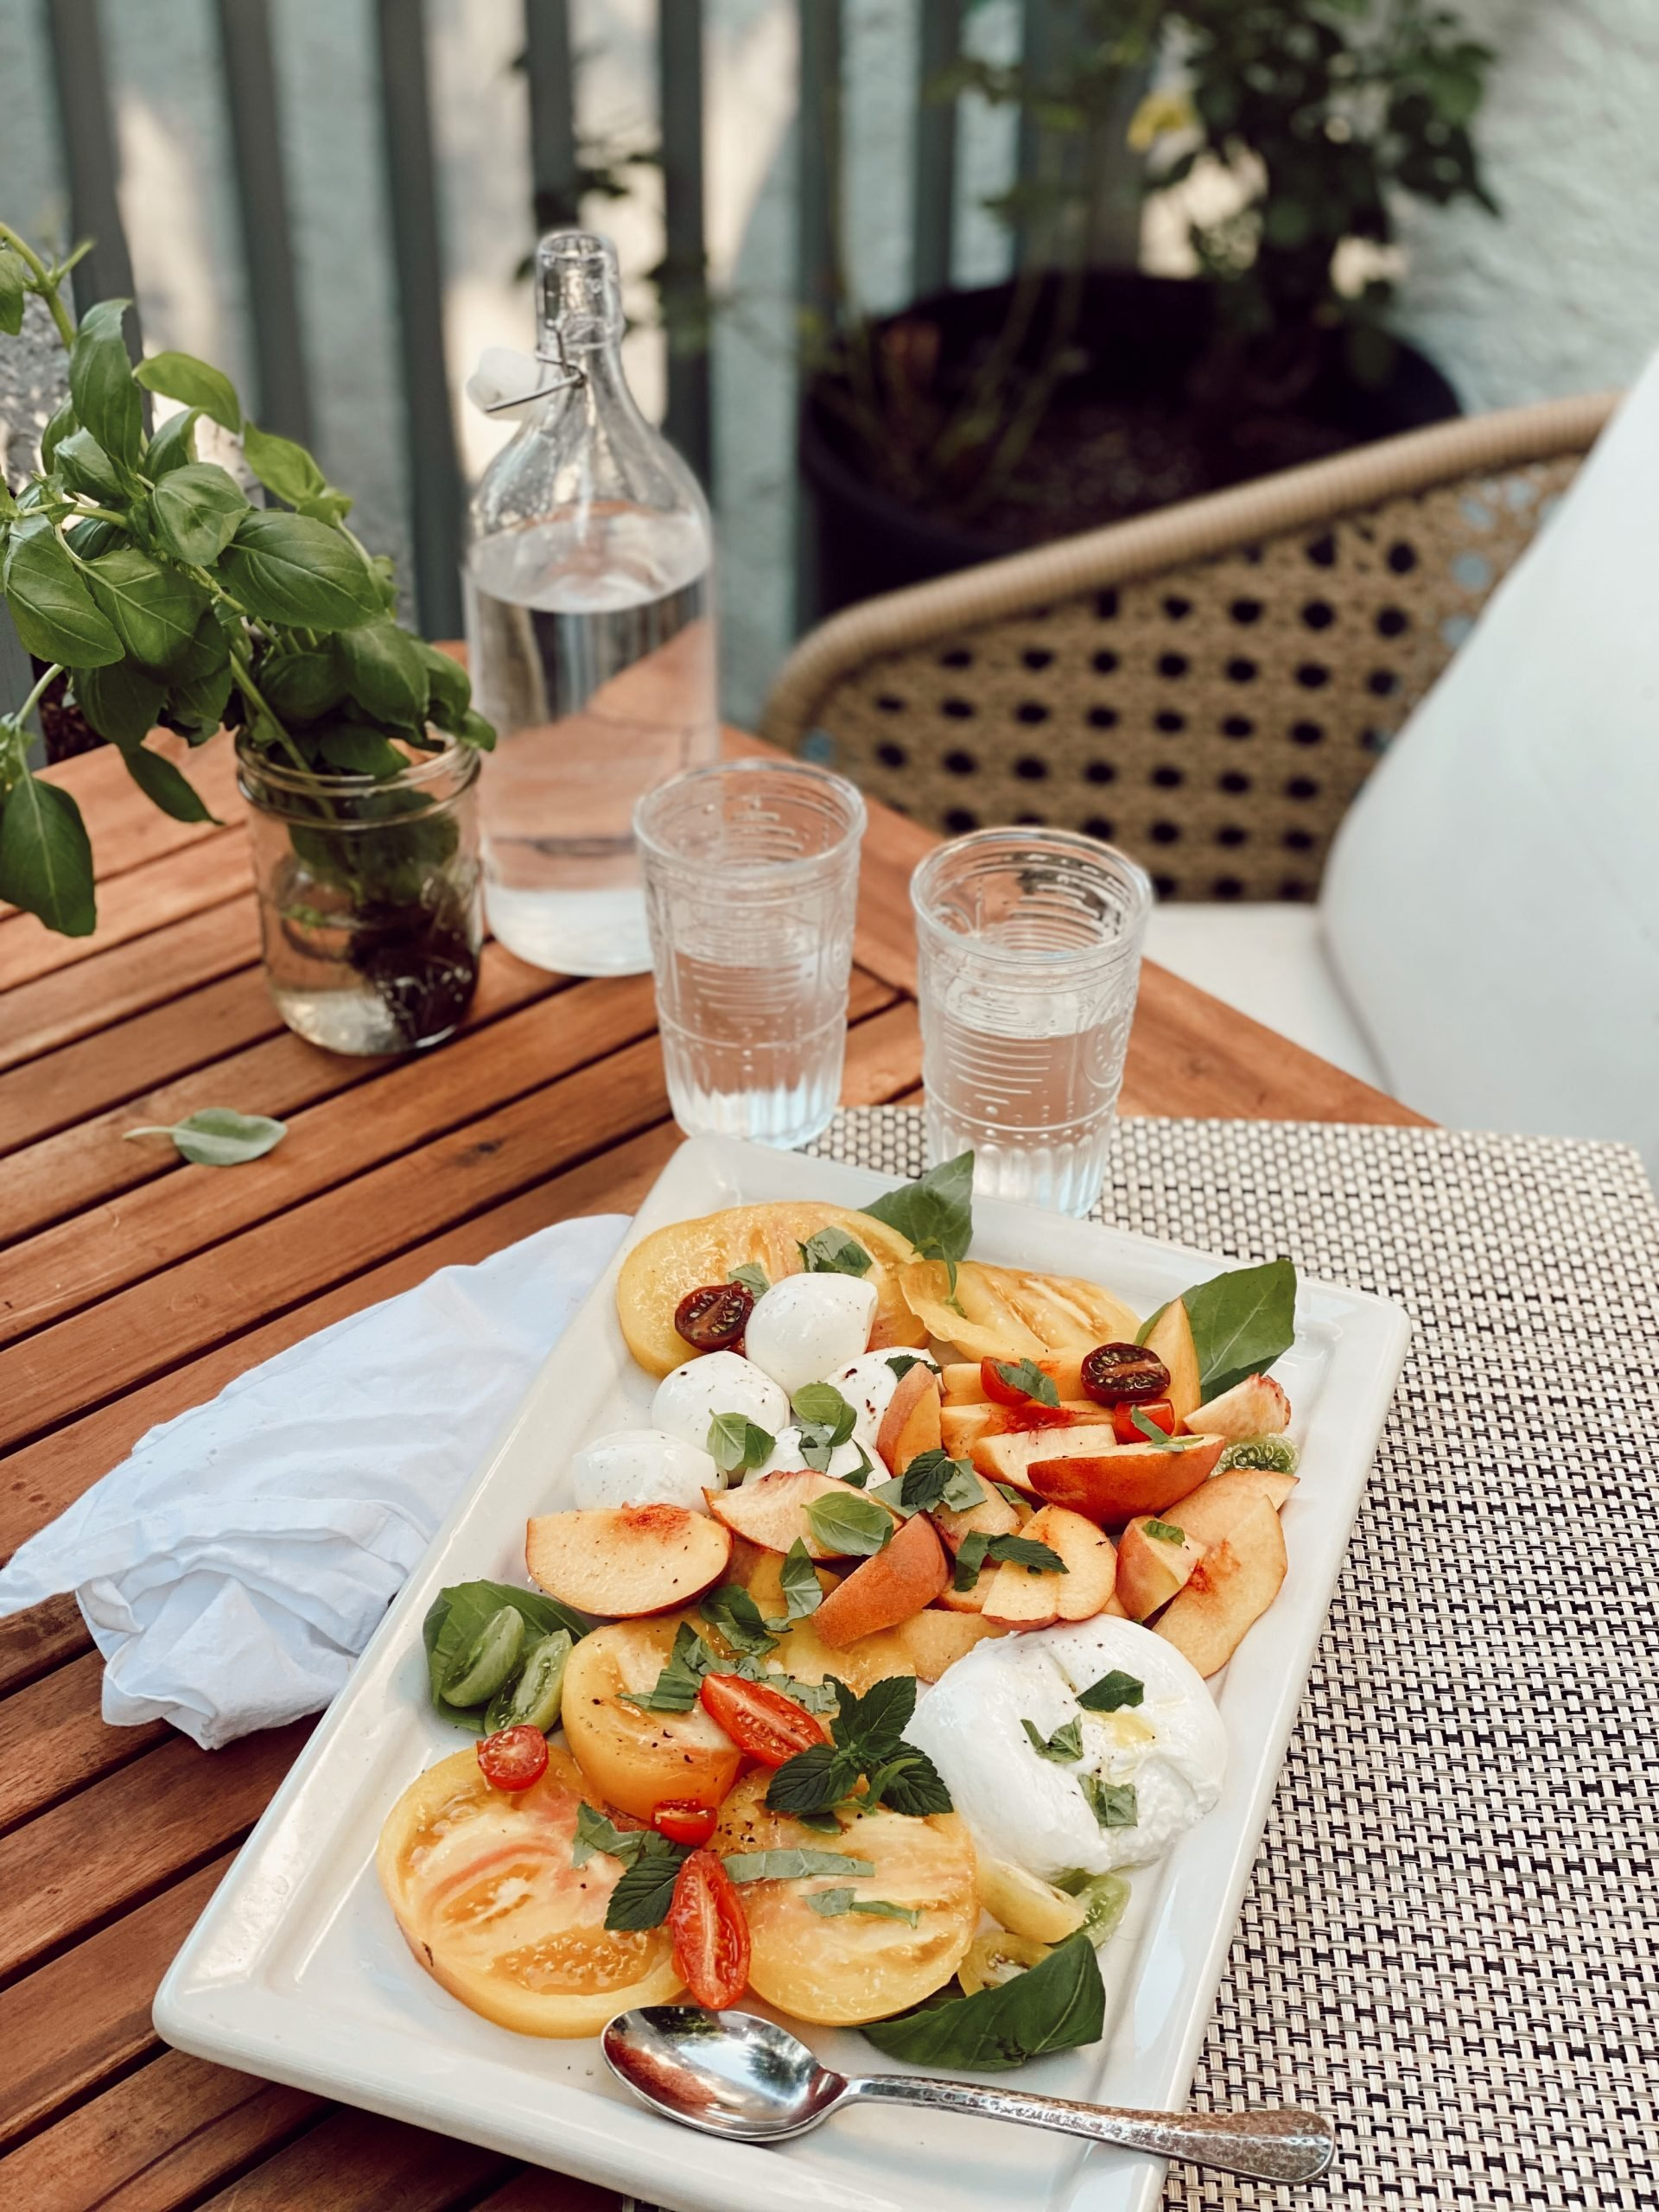 a colorful salad of burrata, tomatoes and basil on top of a wooden table with clear glasses and water